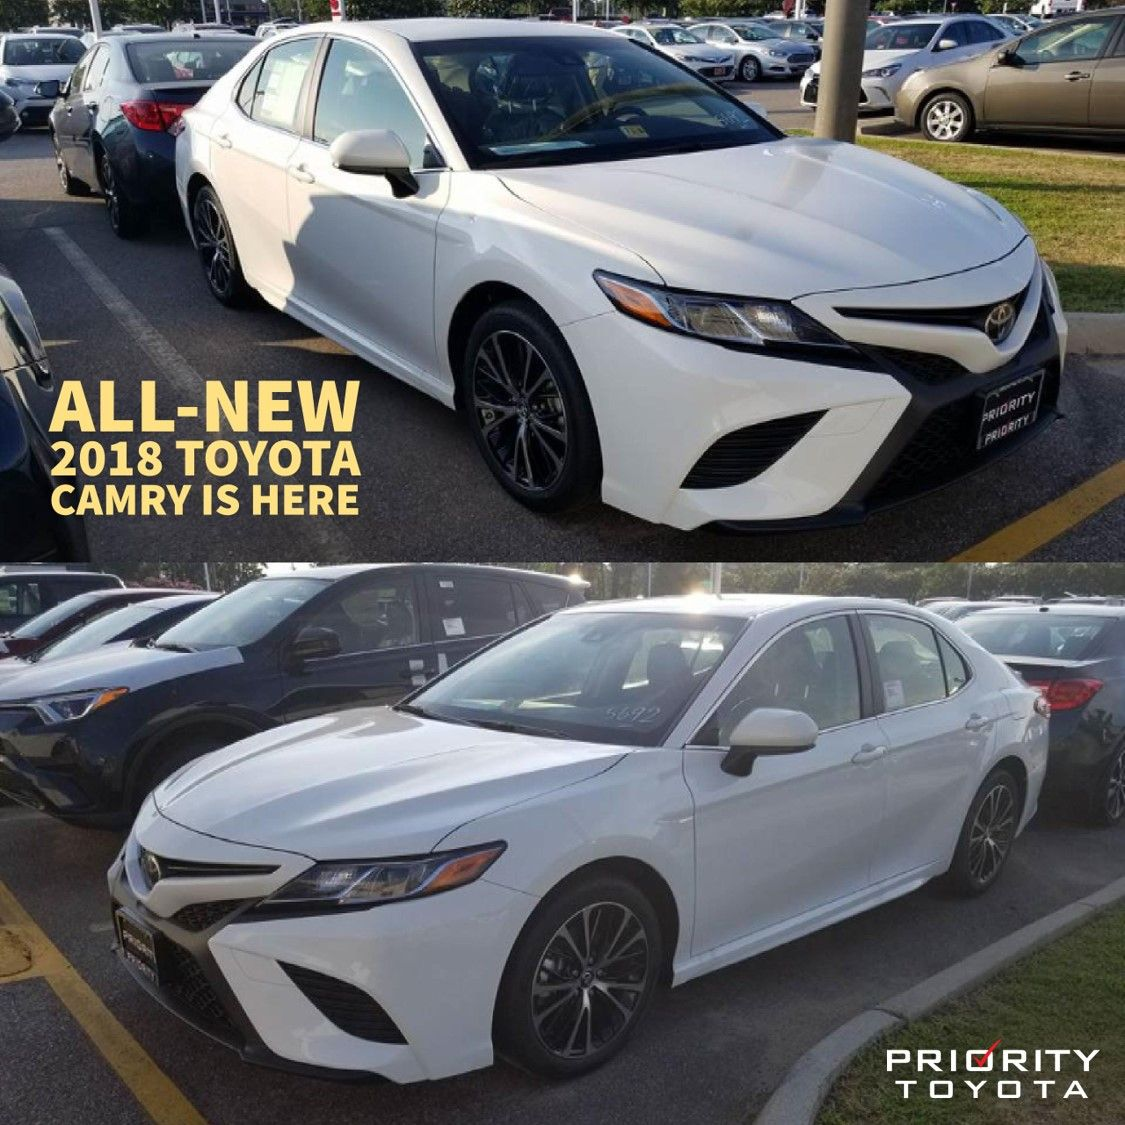 Schedule An Appointment Online Today To Test Drive A New Or Used Toyota In  The Virginia Beach, VA Area!